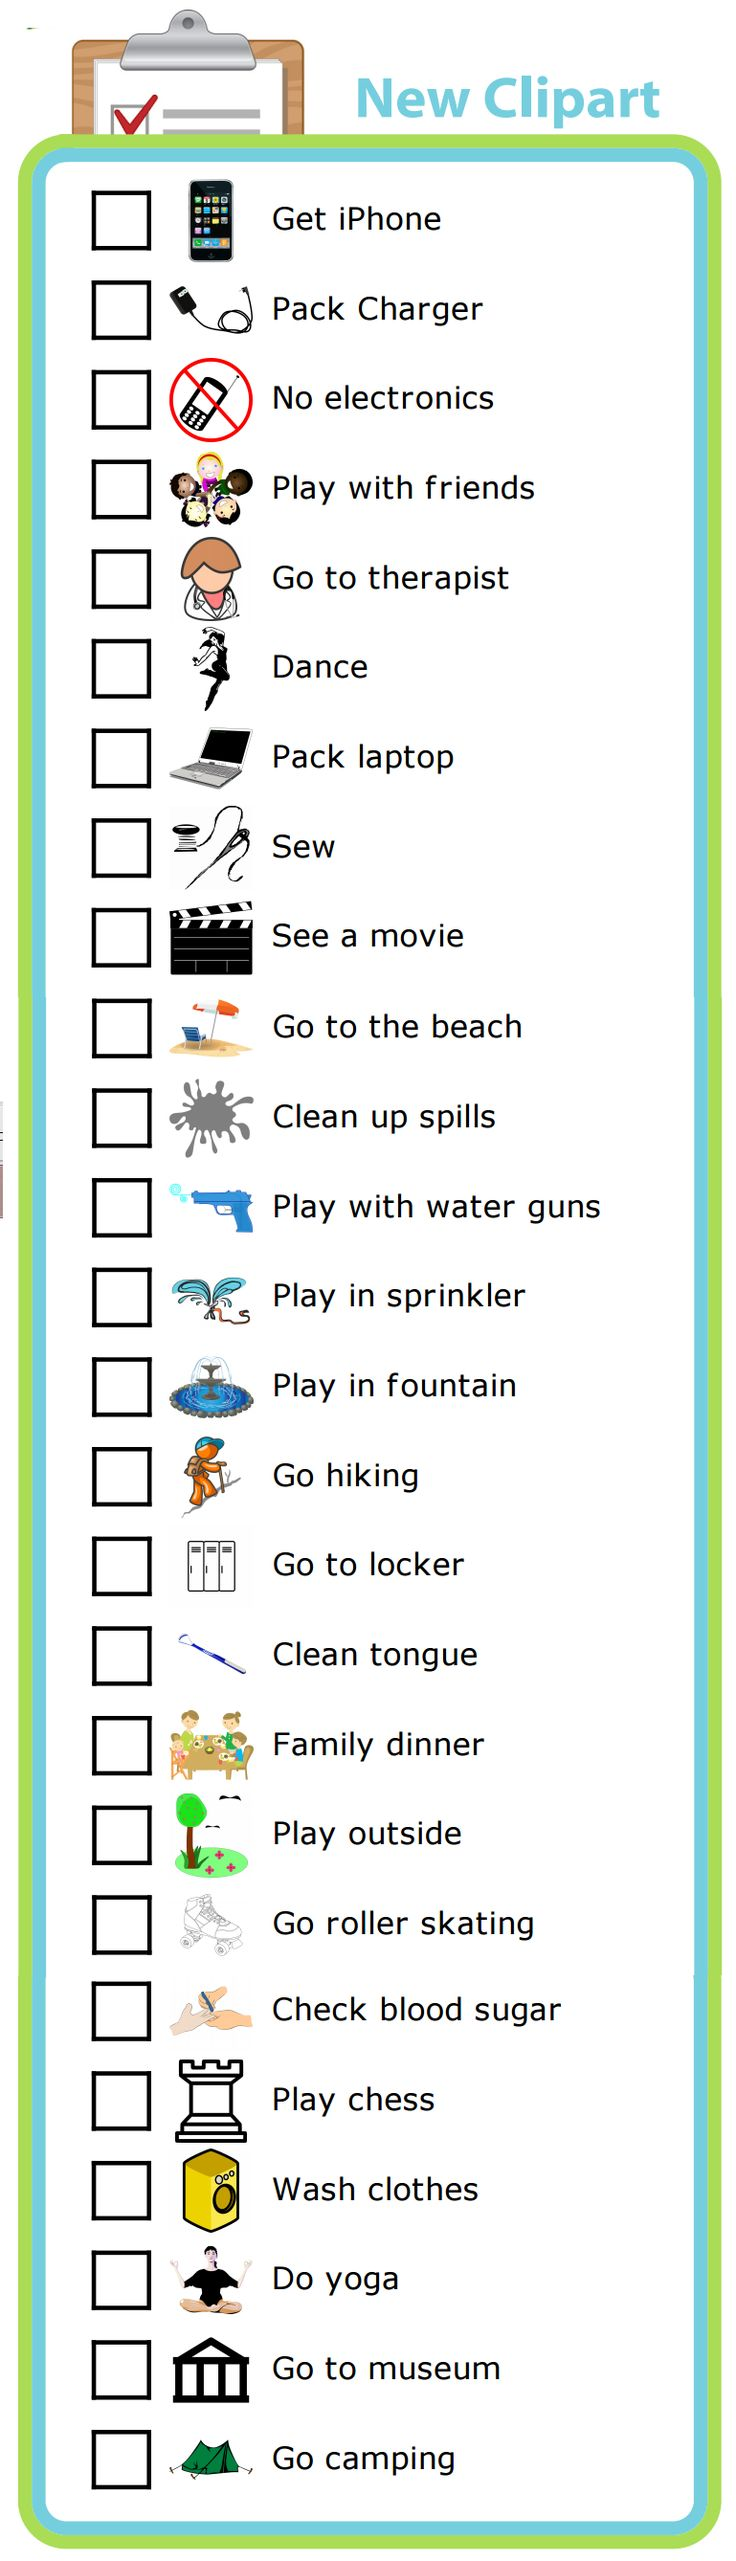 I've added 26 more customer requested images to the Chores & Checklists activity. There are now more than 250 images to choose from to make a morning routine, after school checklist, chore charts, or bedtime routine!